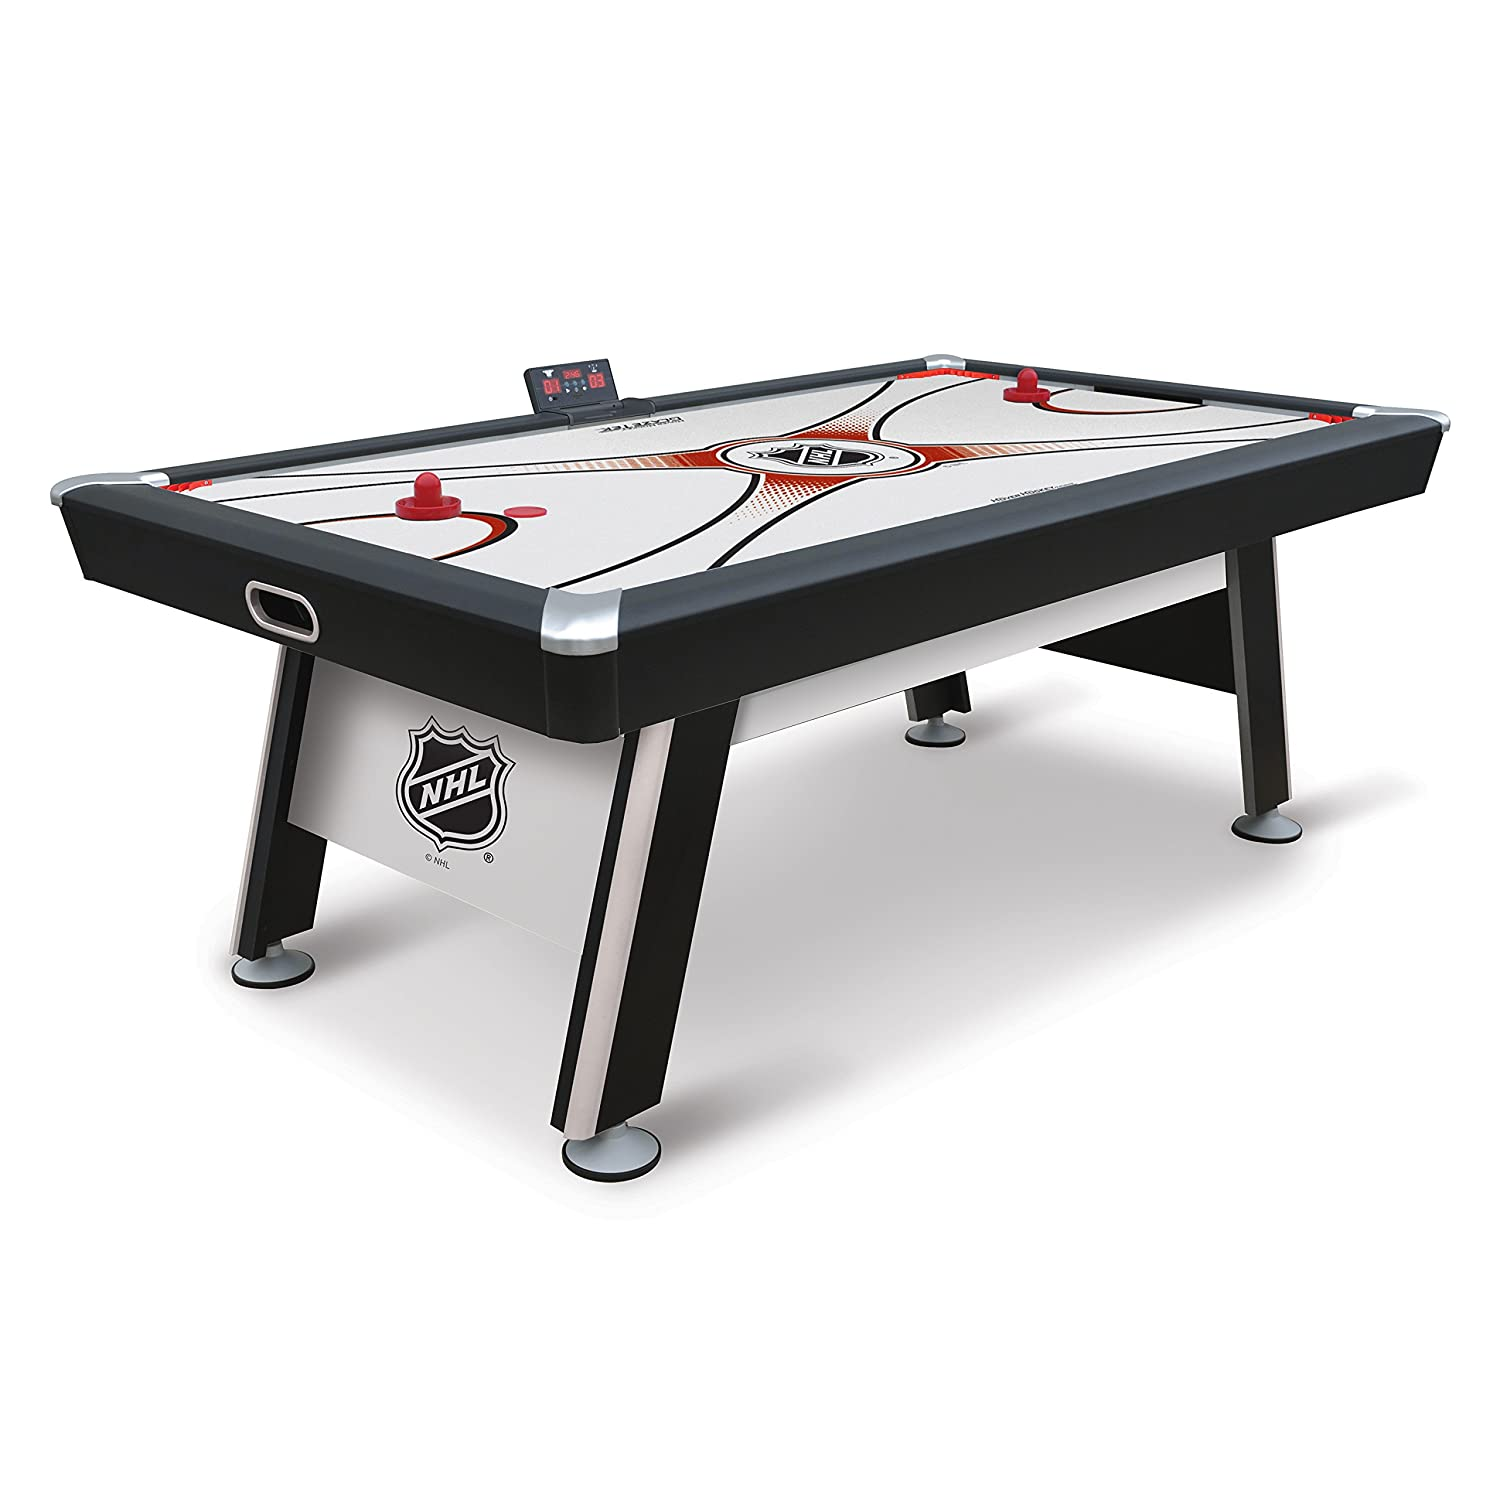 EastPoint Sports NHL Sting Ray Air Powered Hockey Table